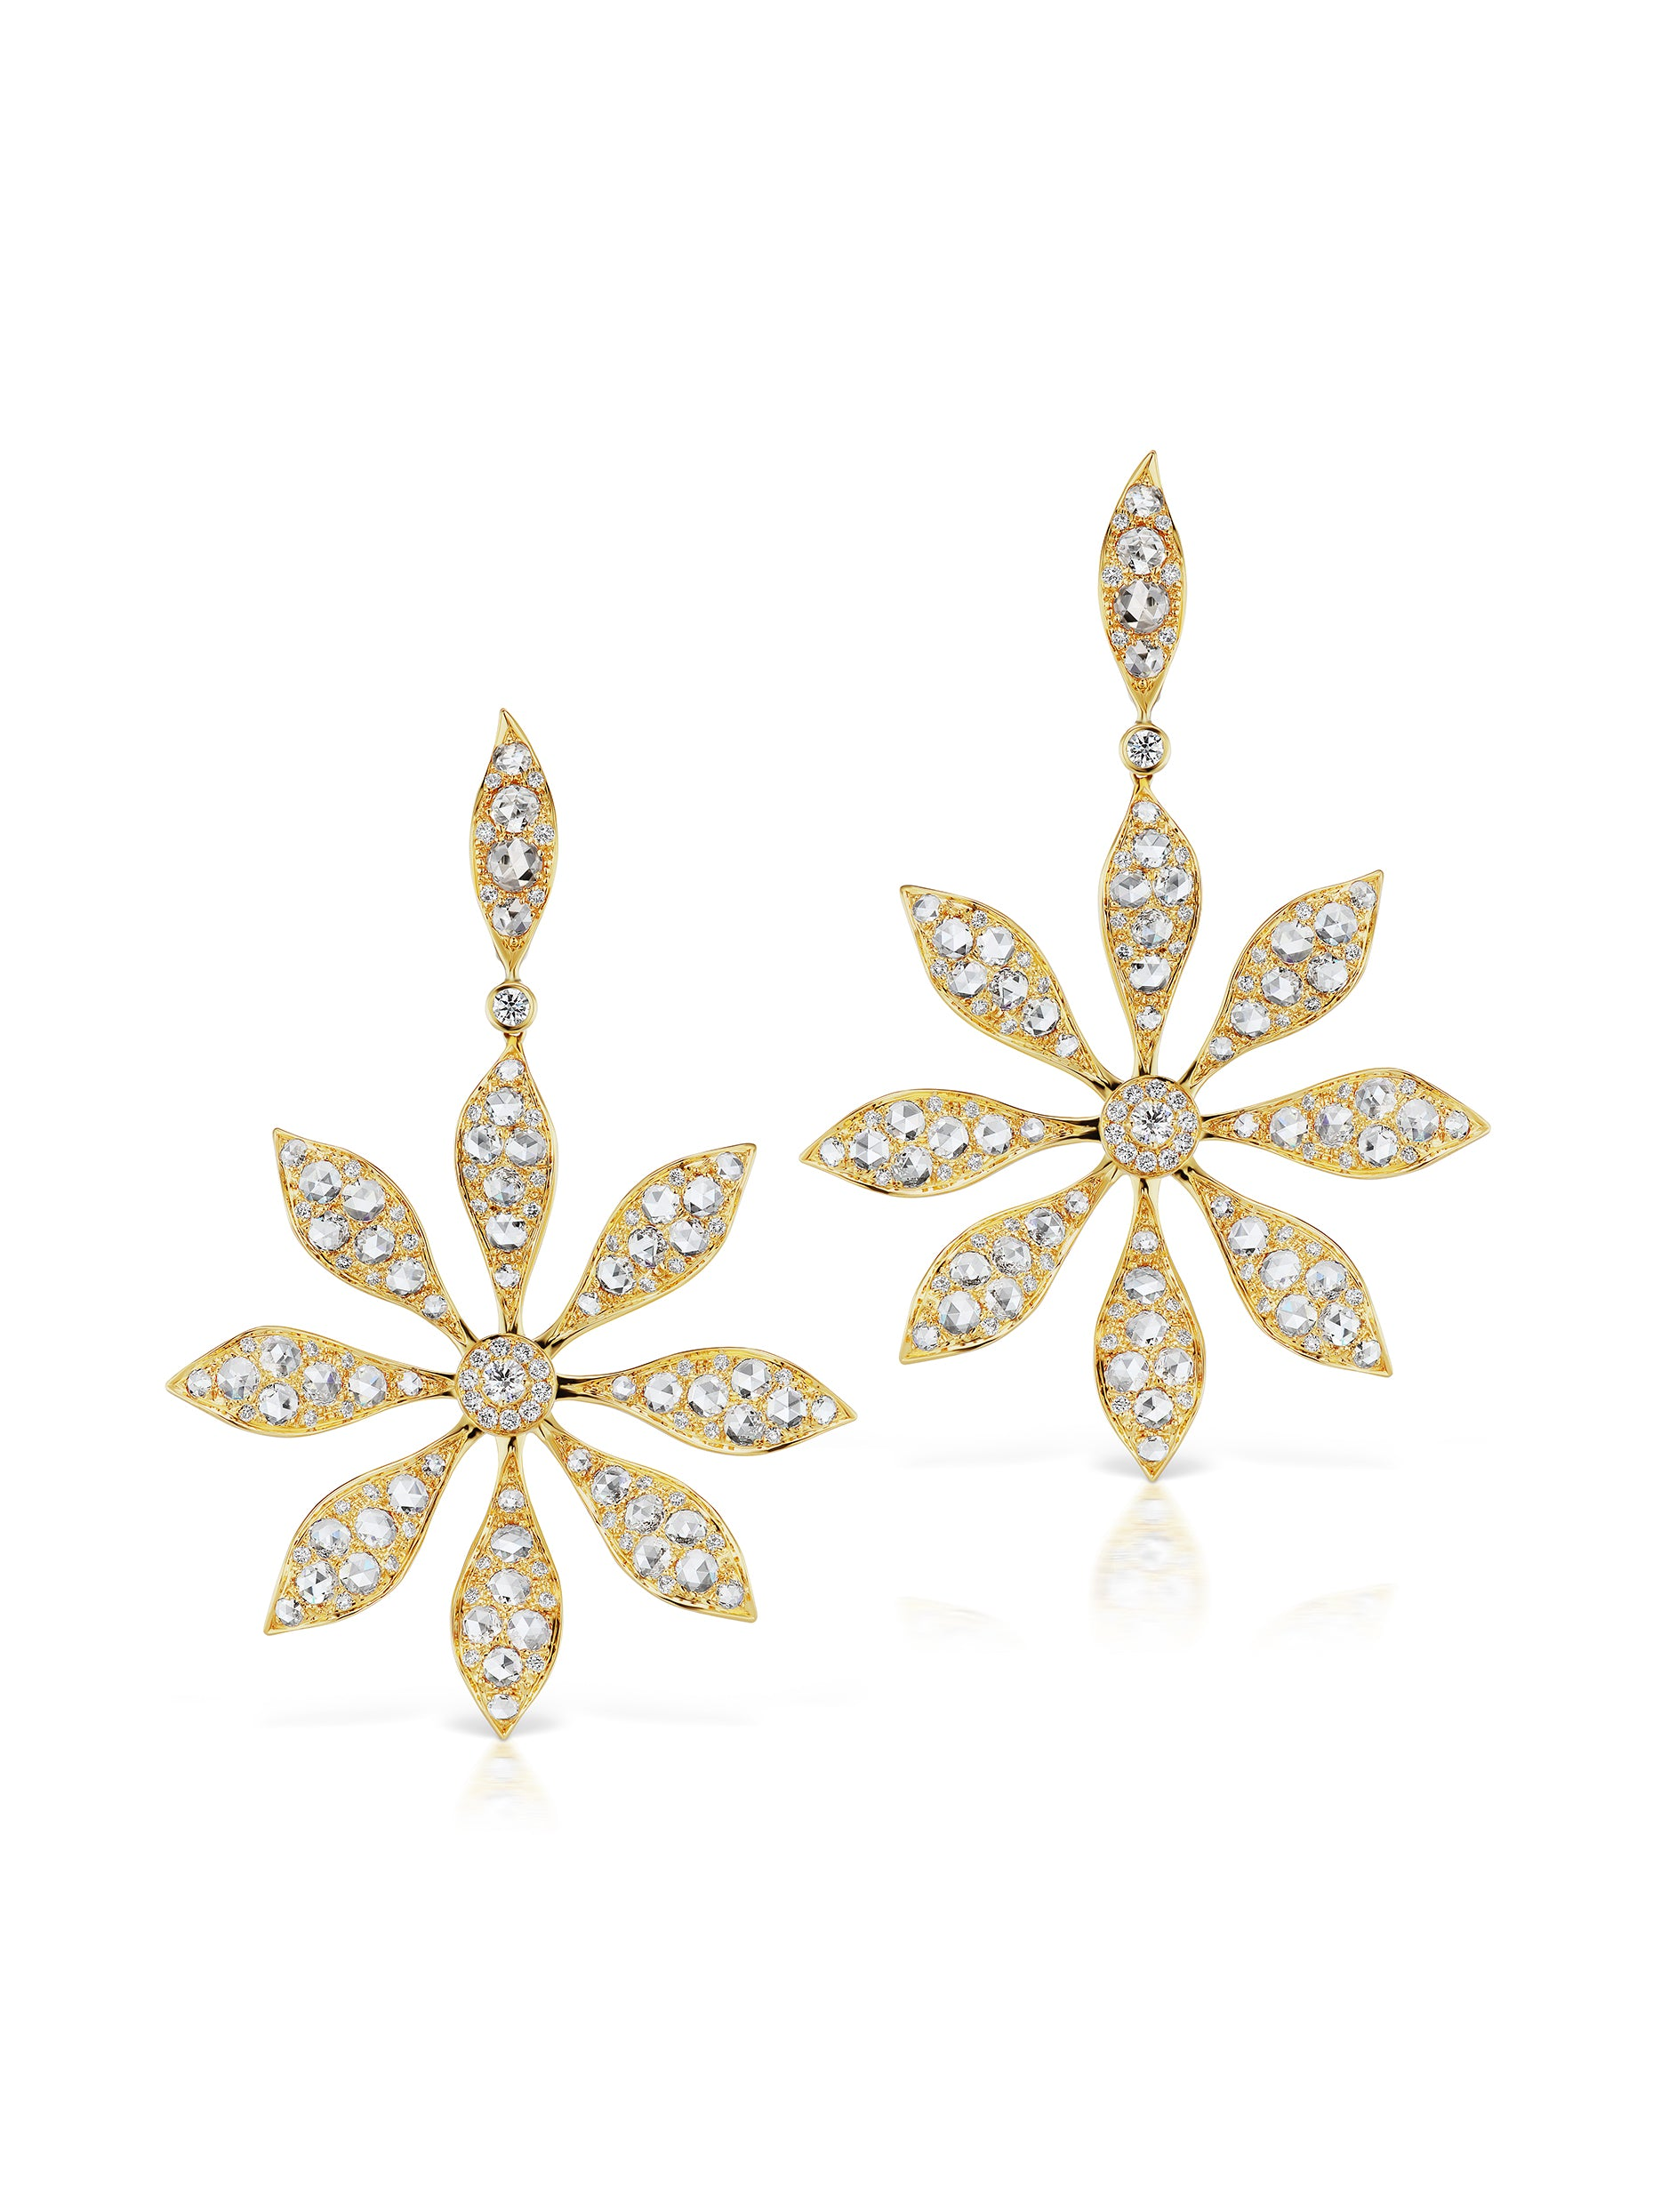 Aster Flower Statement Earrings